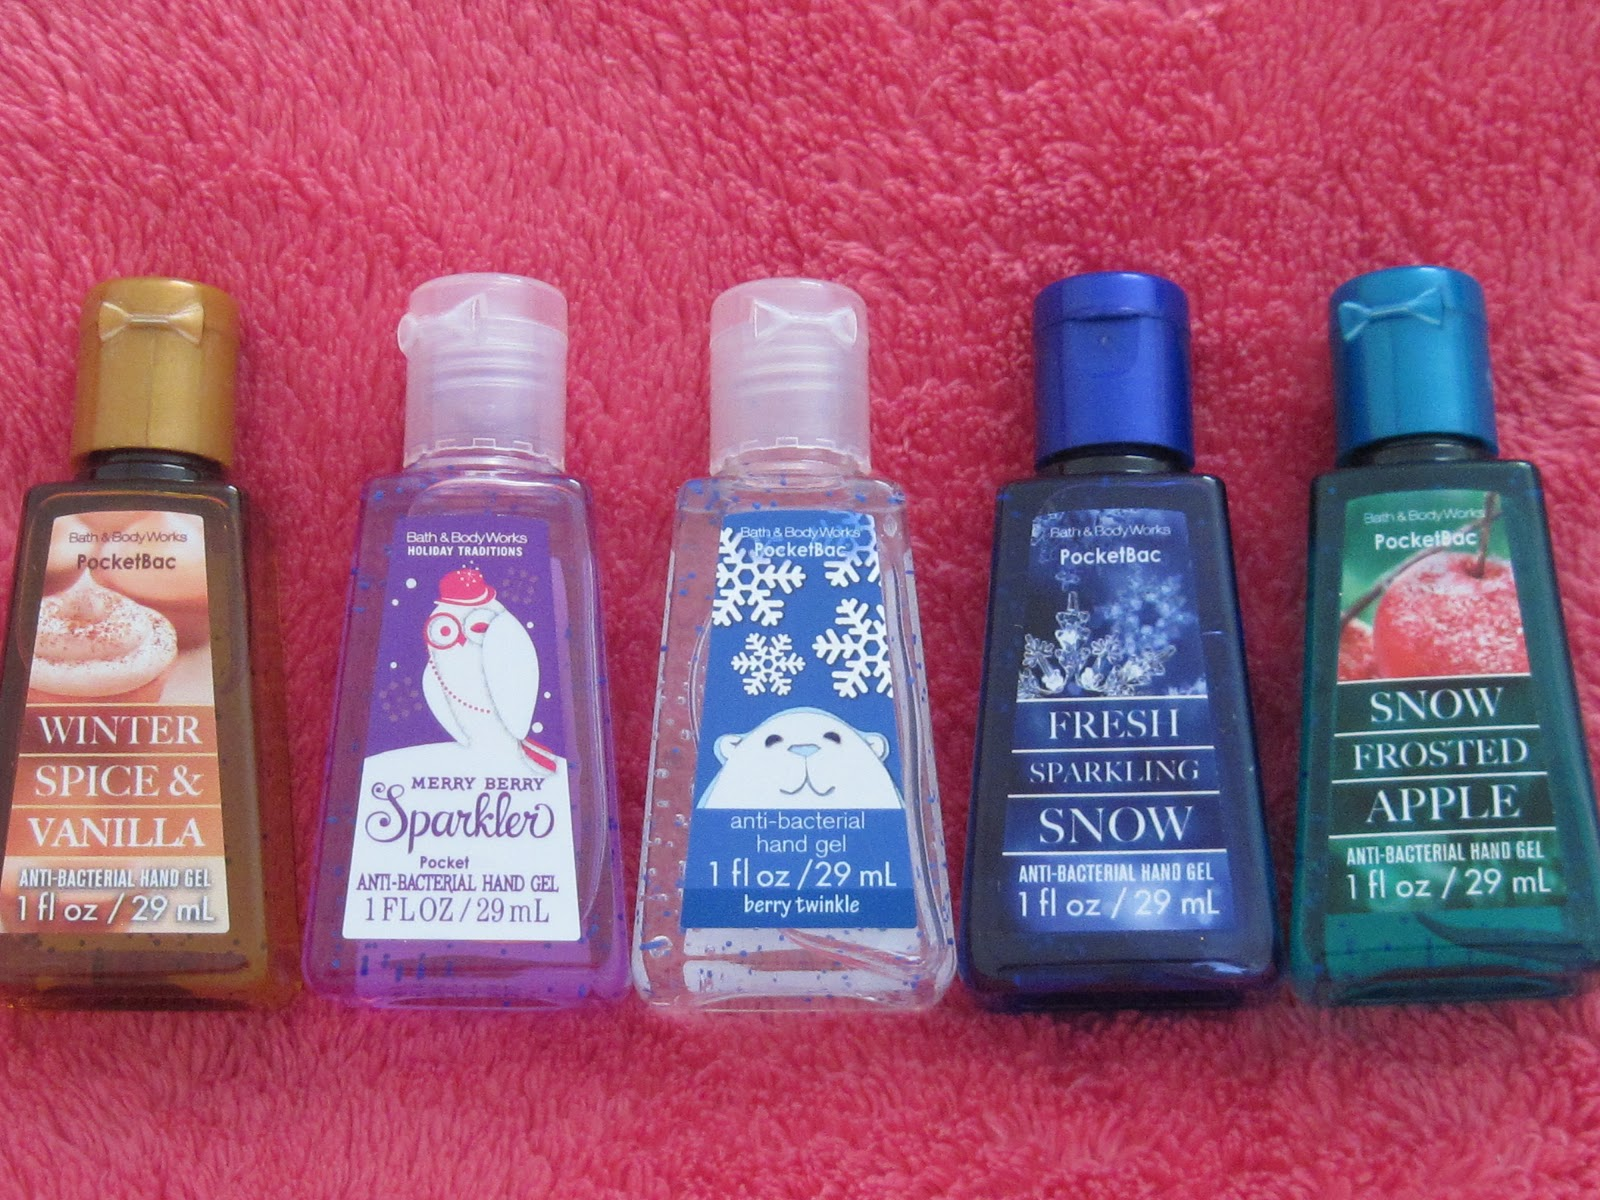 Bath and body works holiday scents - A Tiny Bath Body Works Haul And The Sephora Vib 20 Off Haul I M More Excited About My Purchases From Sephora But I Ll Show You What I Got From B Bw Too